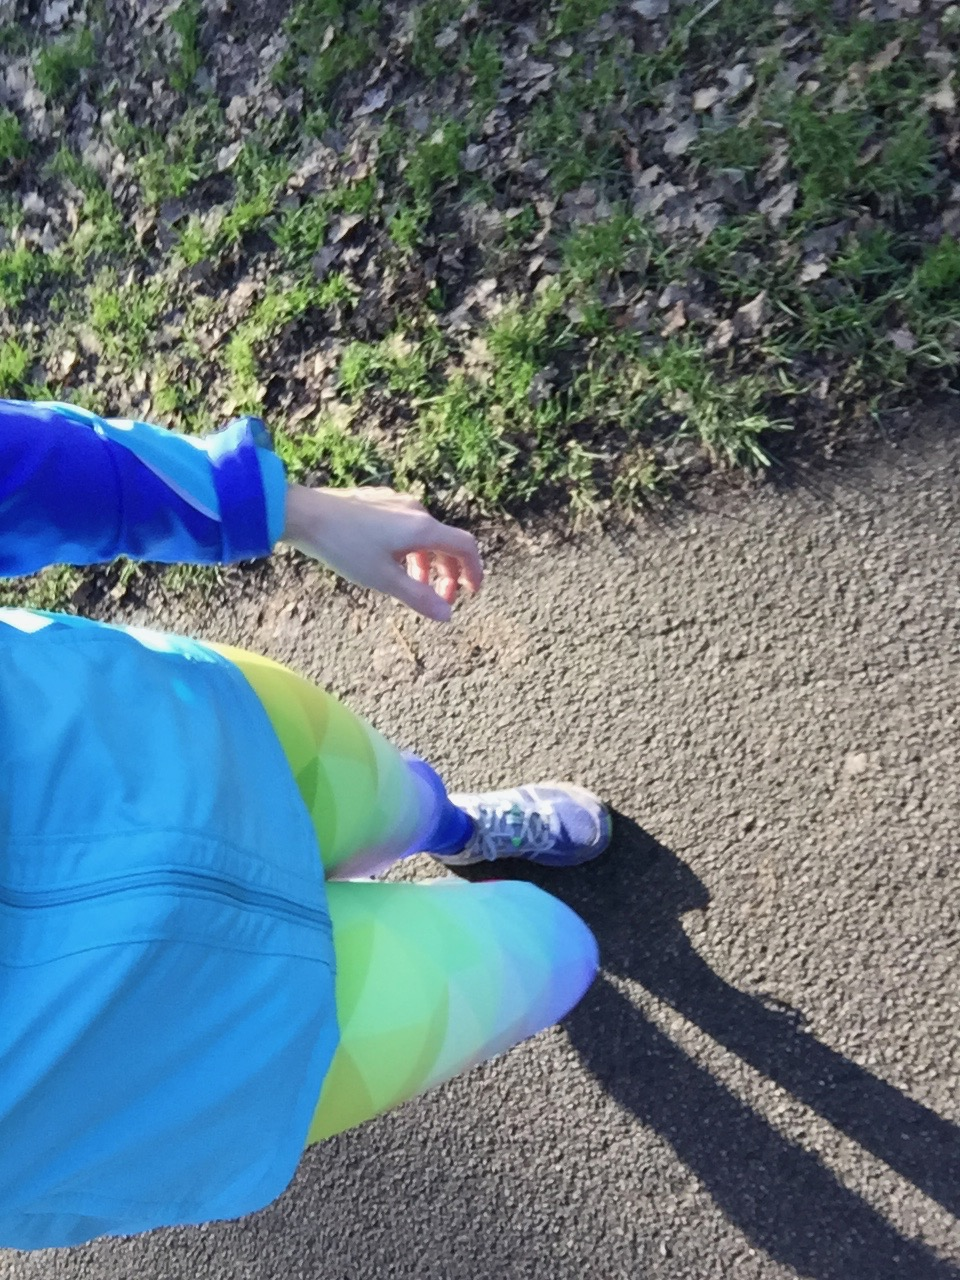 A vbird's eye view of Tamsyn's legs with brightly coloured leggings on.